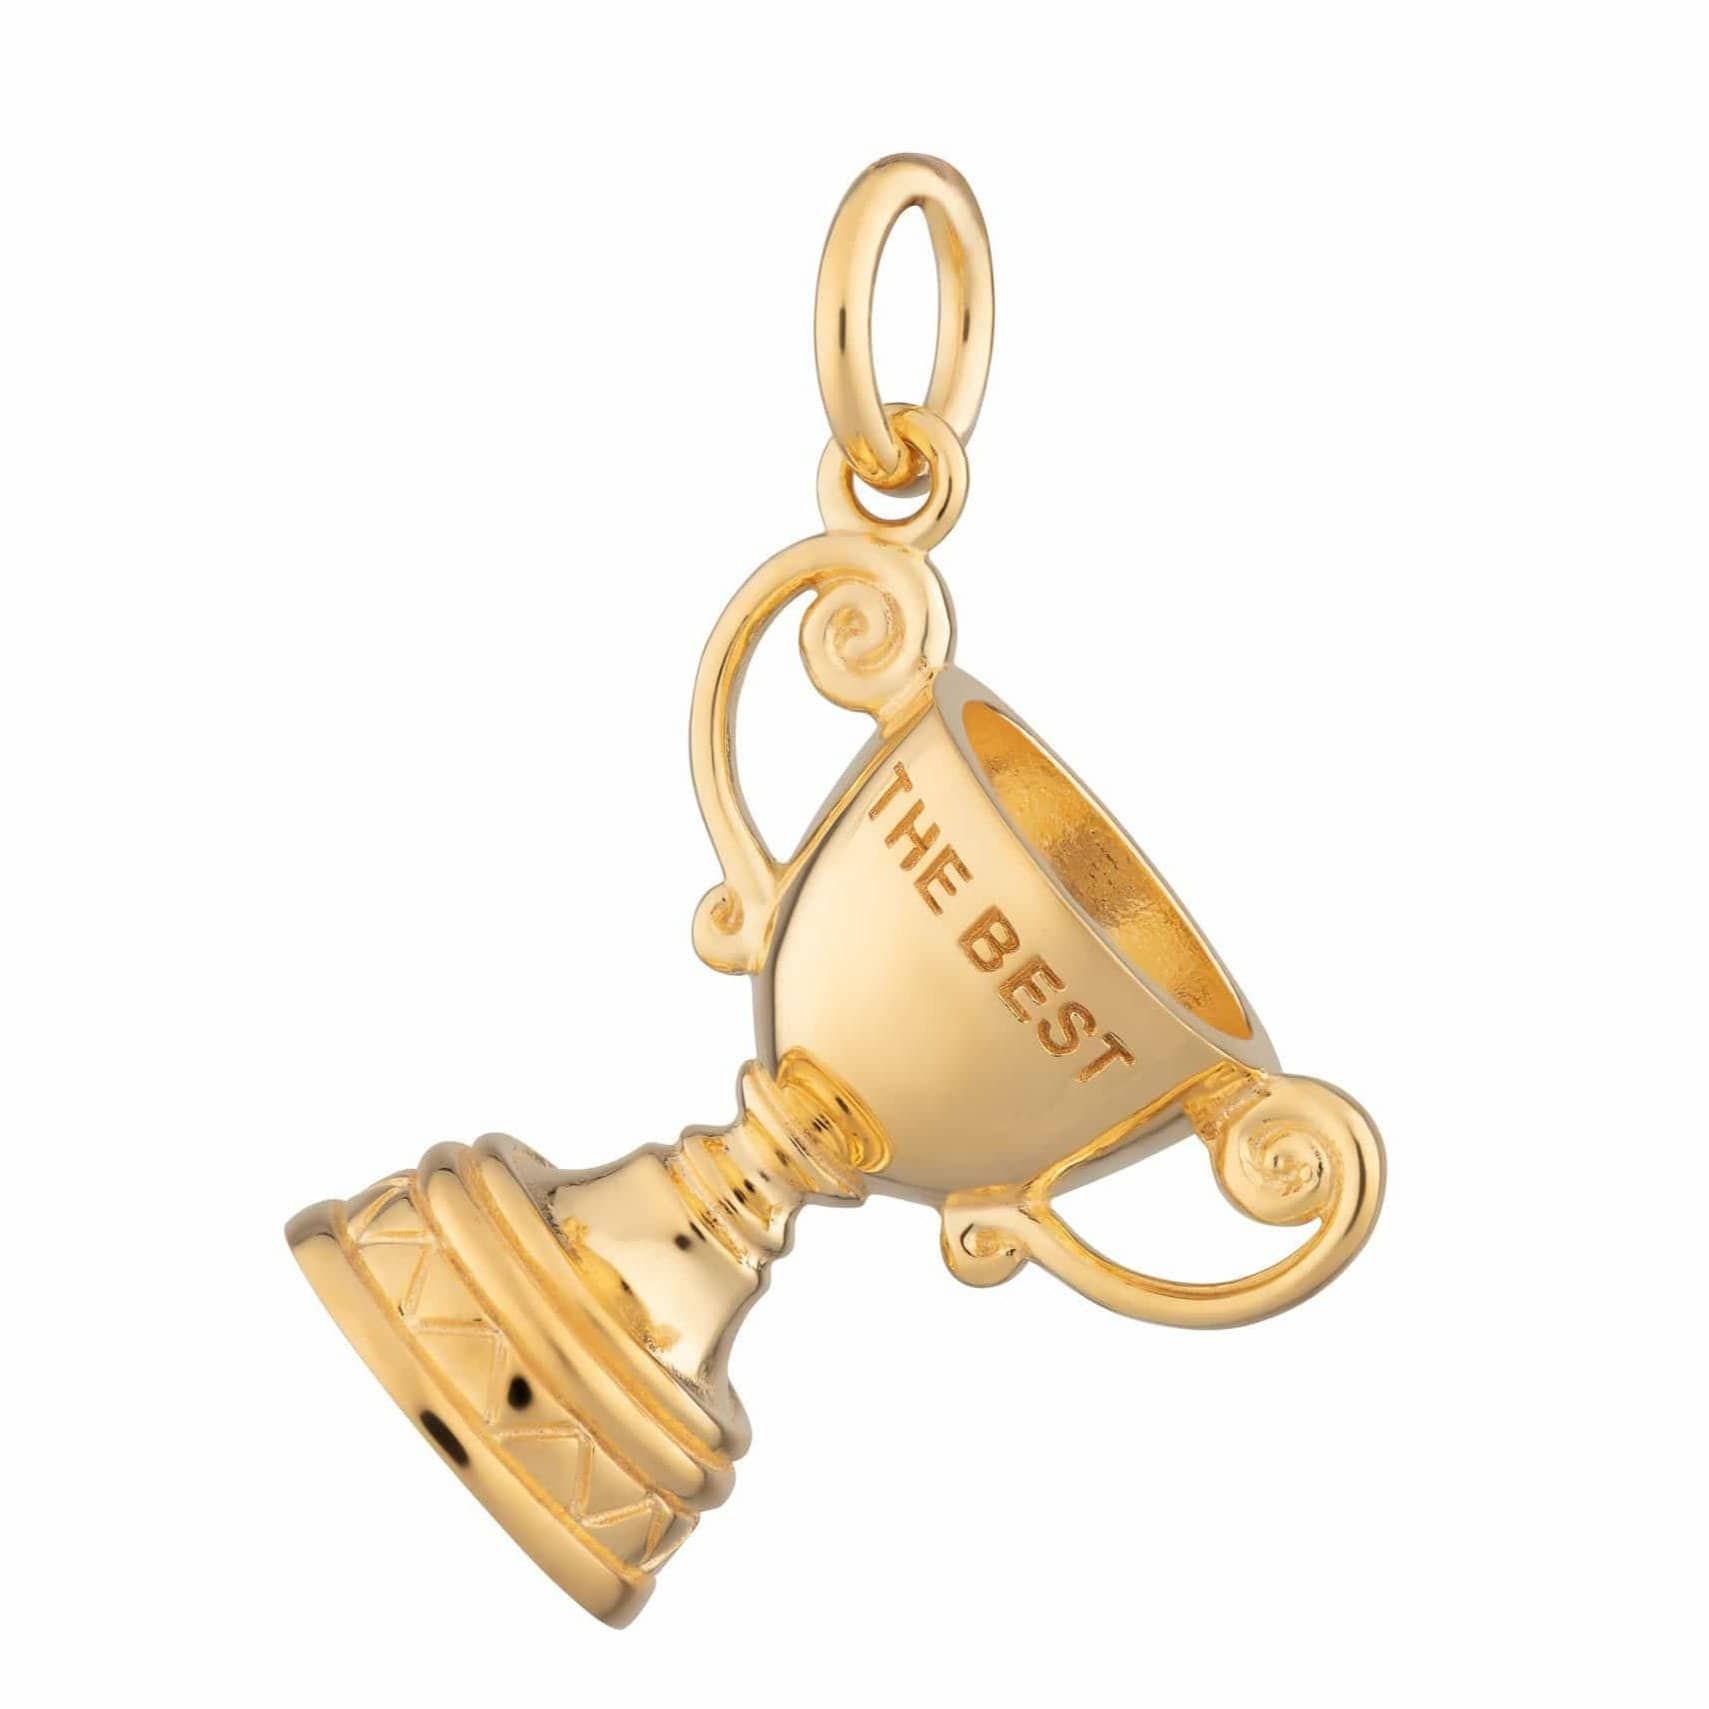 Gold Plated 'The Best' Trophy Cup Charm